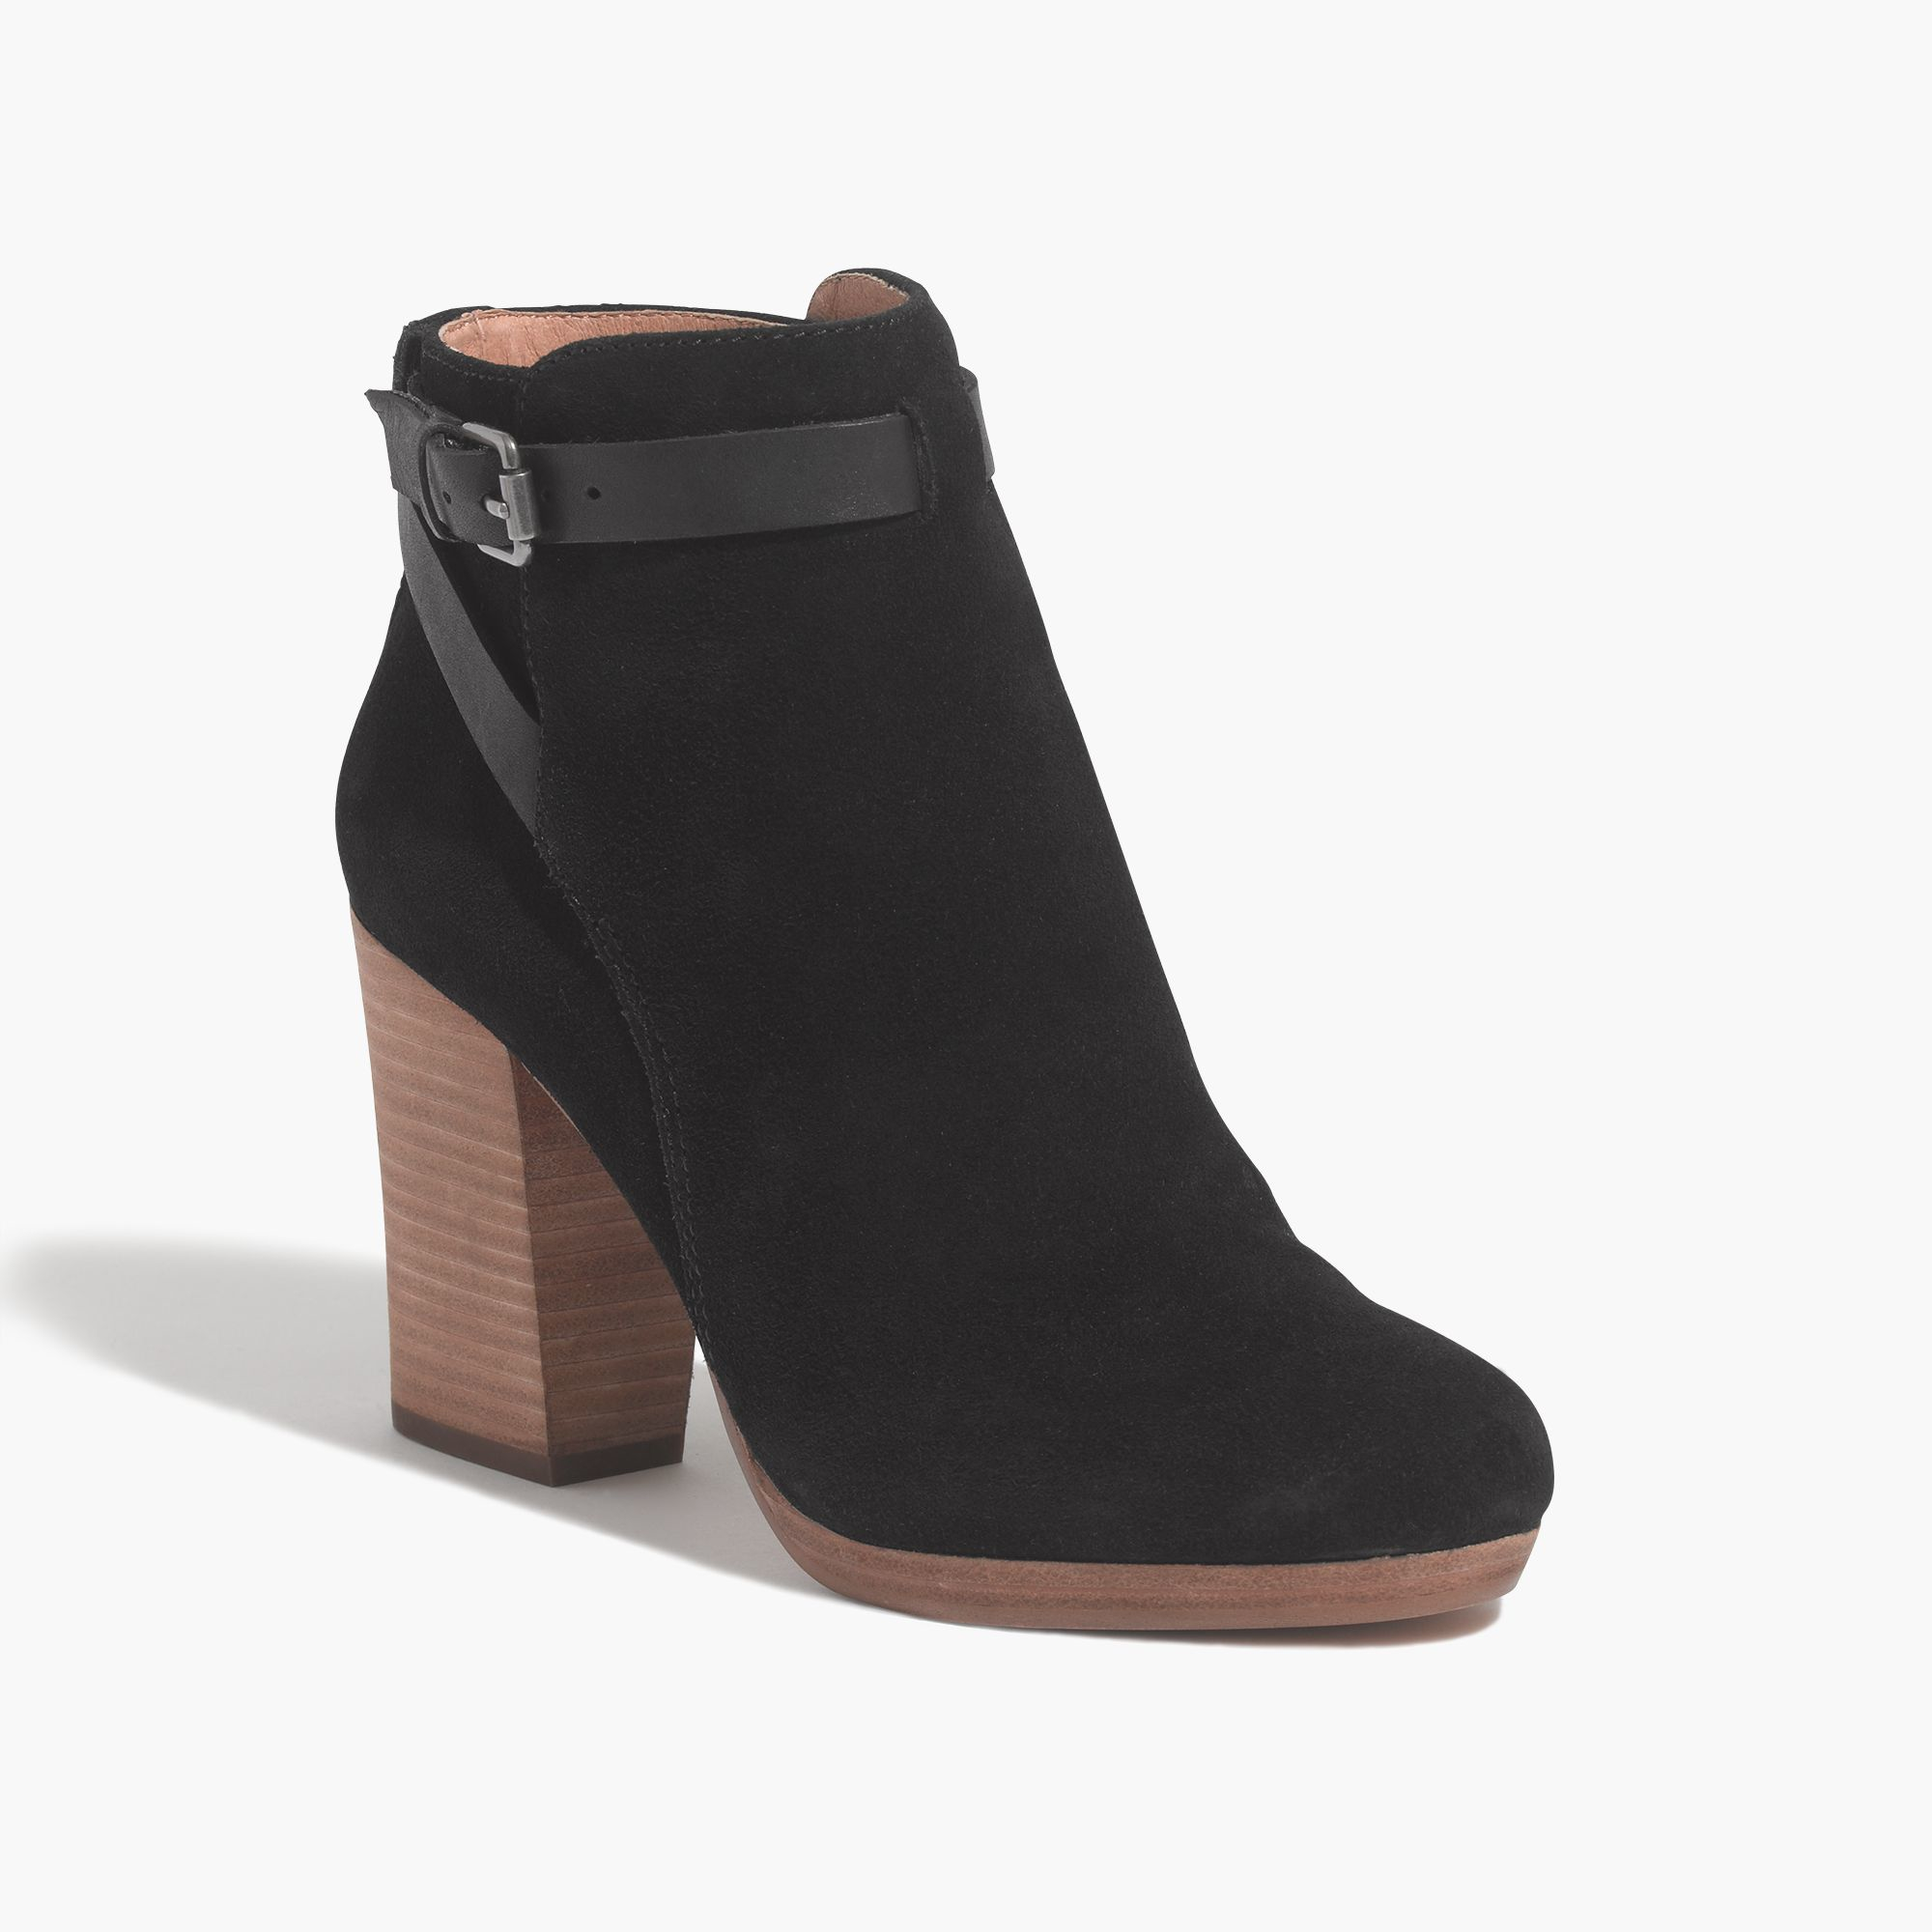 24c9b86eb1c Madewell Black The Aimee Ankle Boot